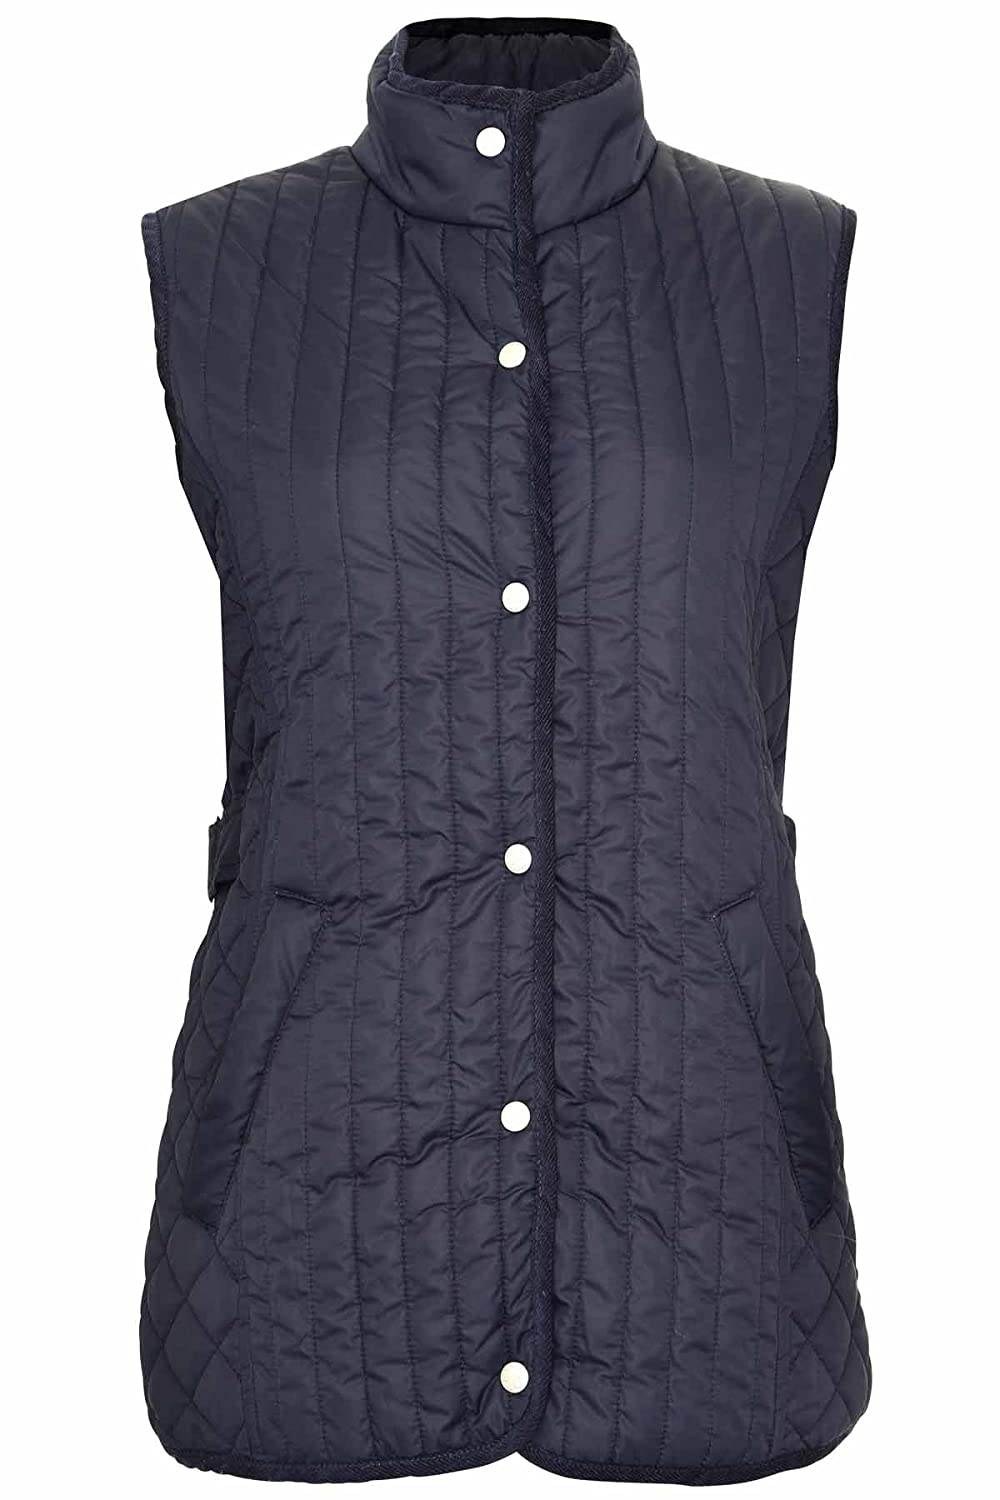 Champion Ladies Country Estate PressStud Closure Quilted Gilet Bodywarmer LGILET-1638